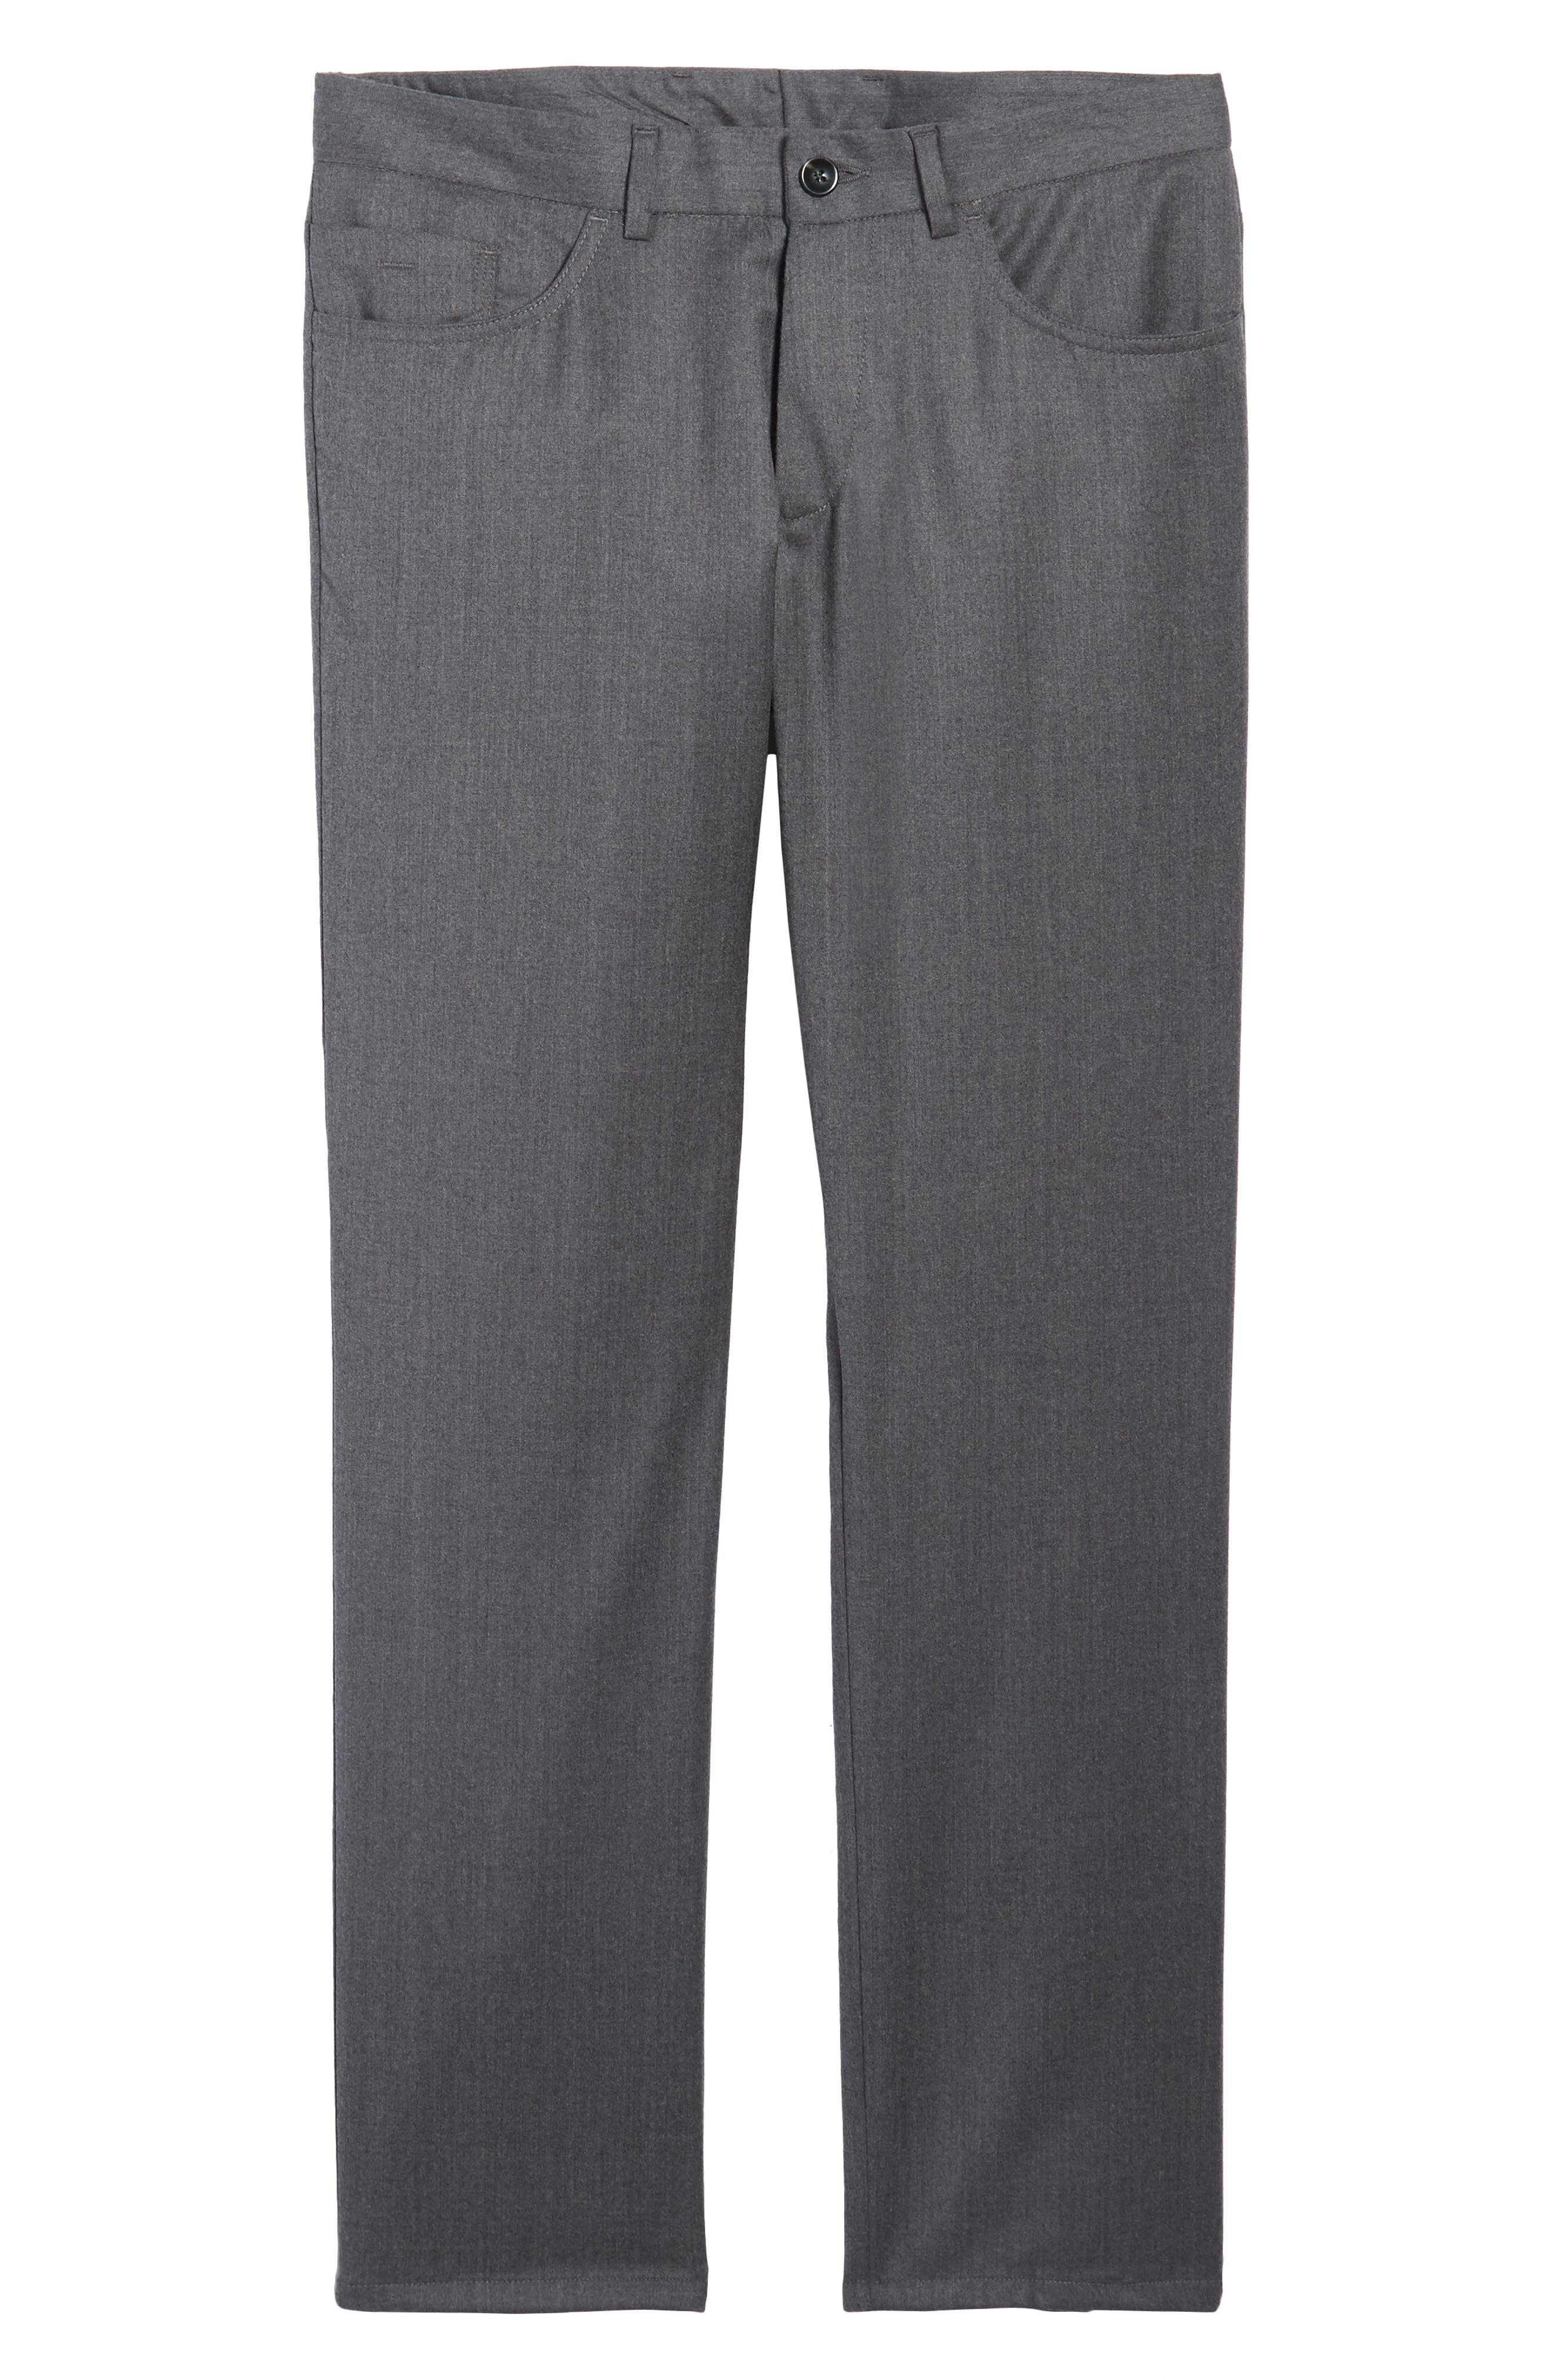 Flat Front Solid Stretch Wool Trousers,                             Alternate thumbnail 6, color,                             020